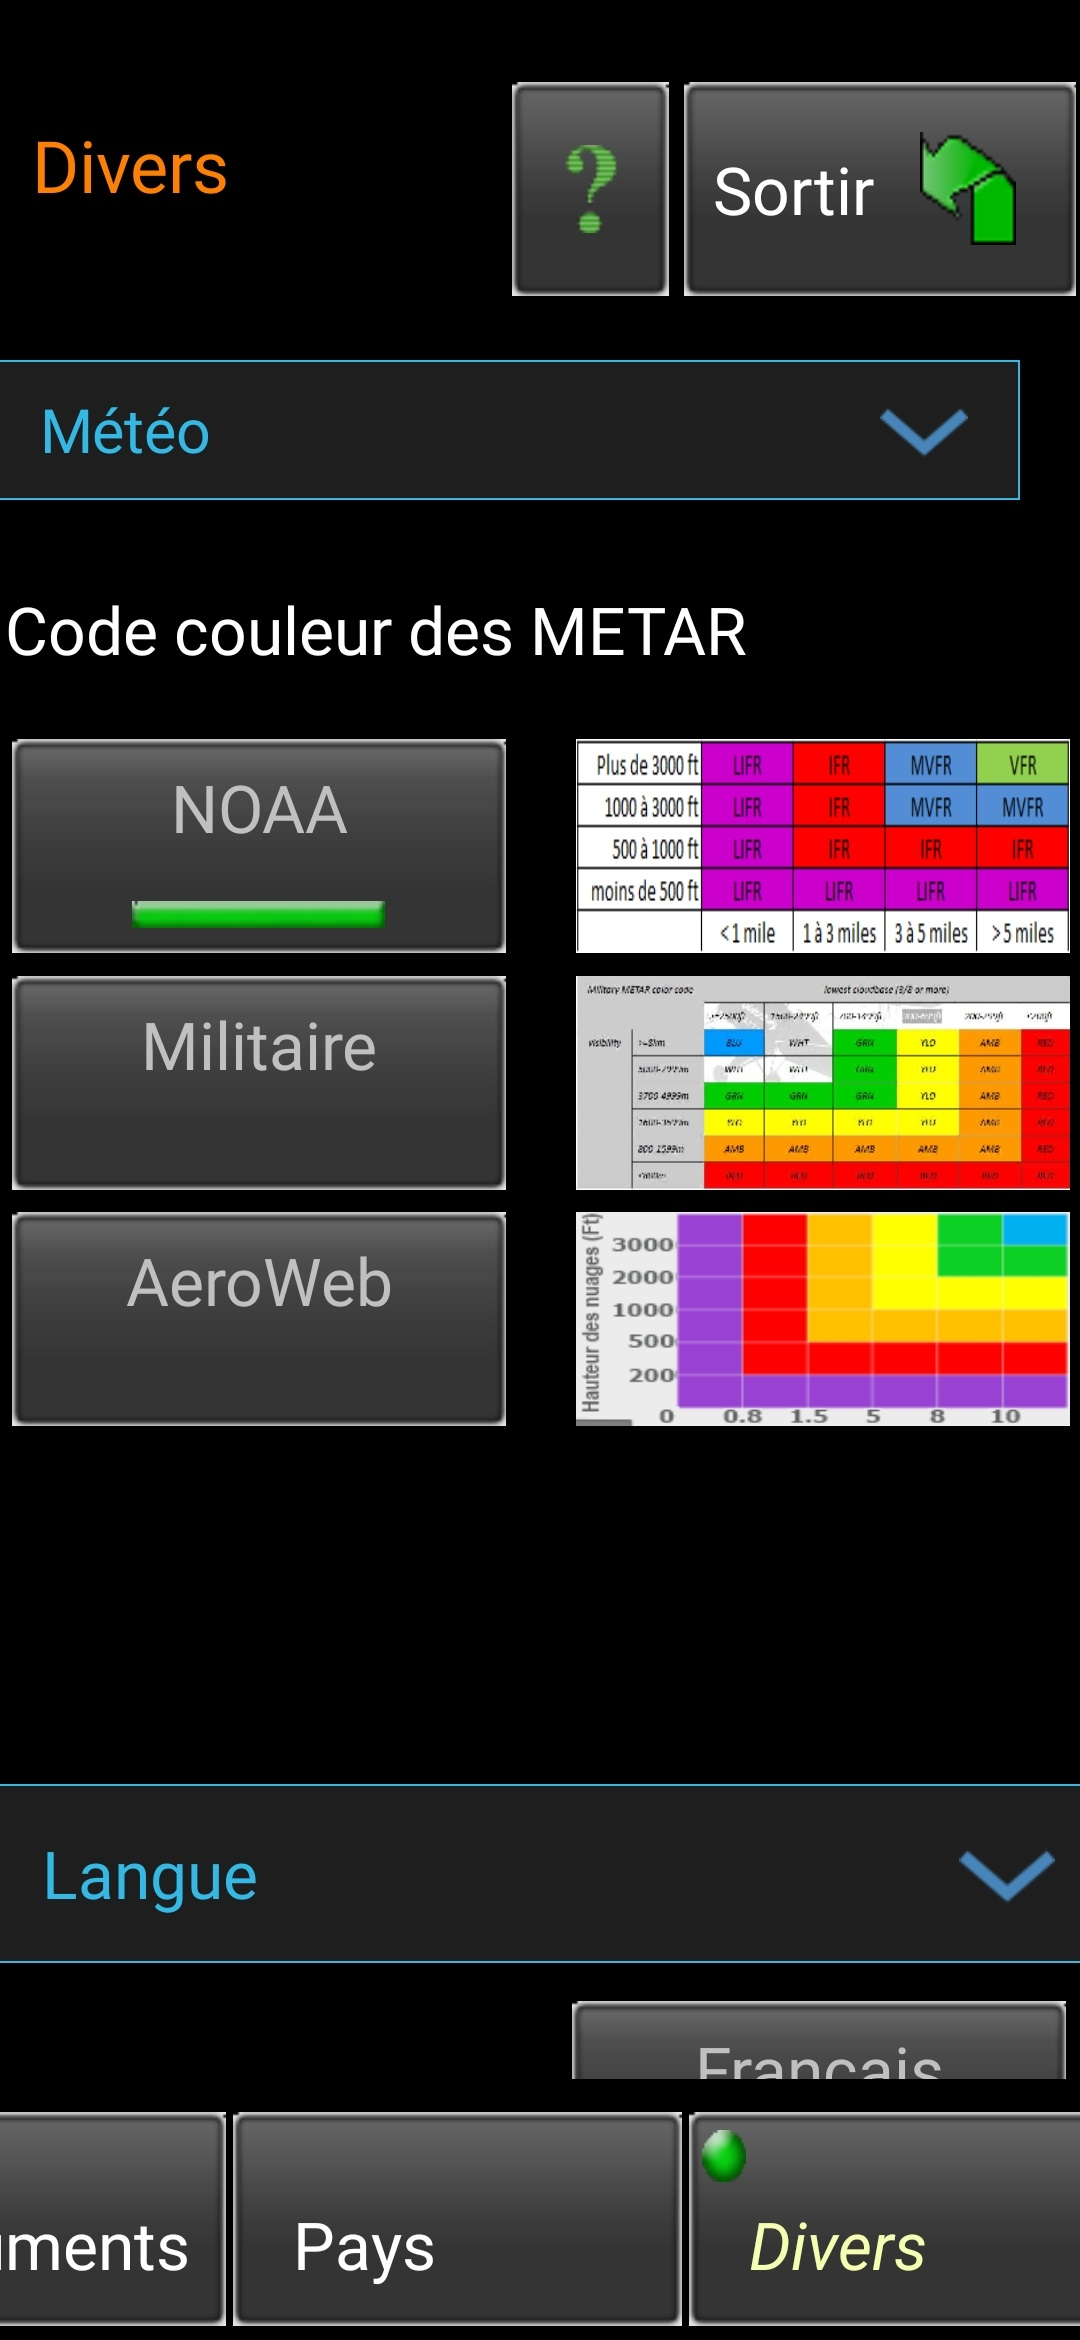 [Image: AN_Metar4.jpg]